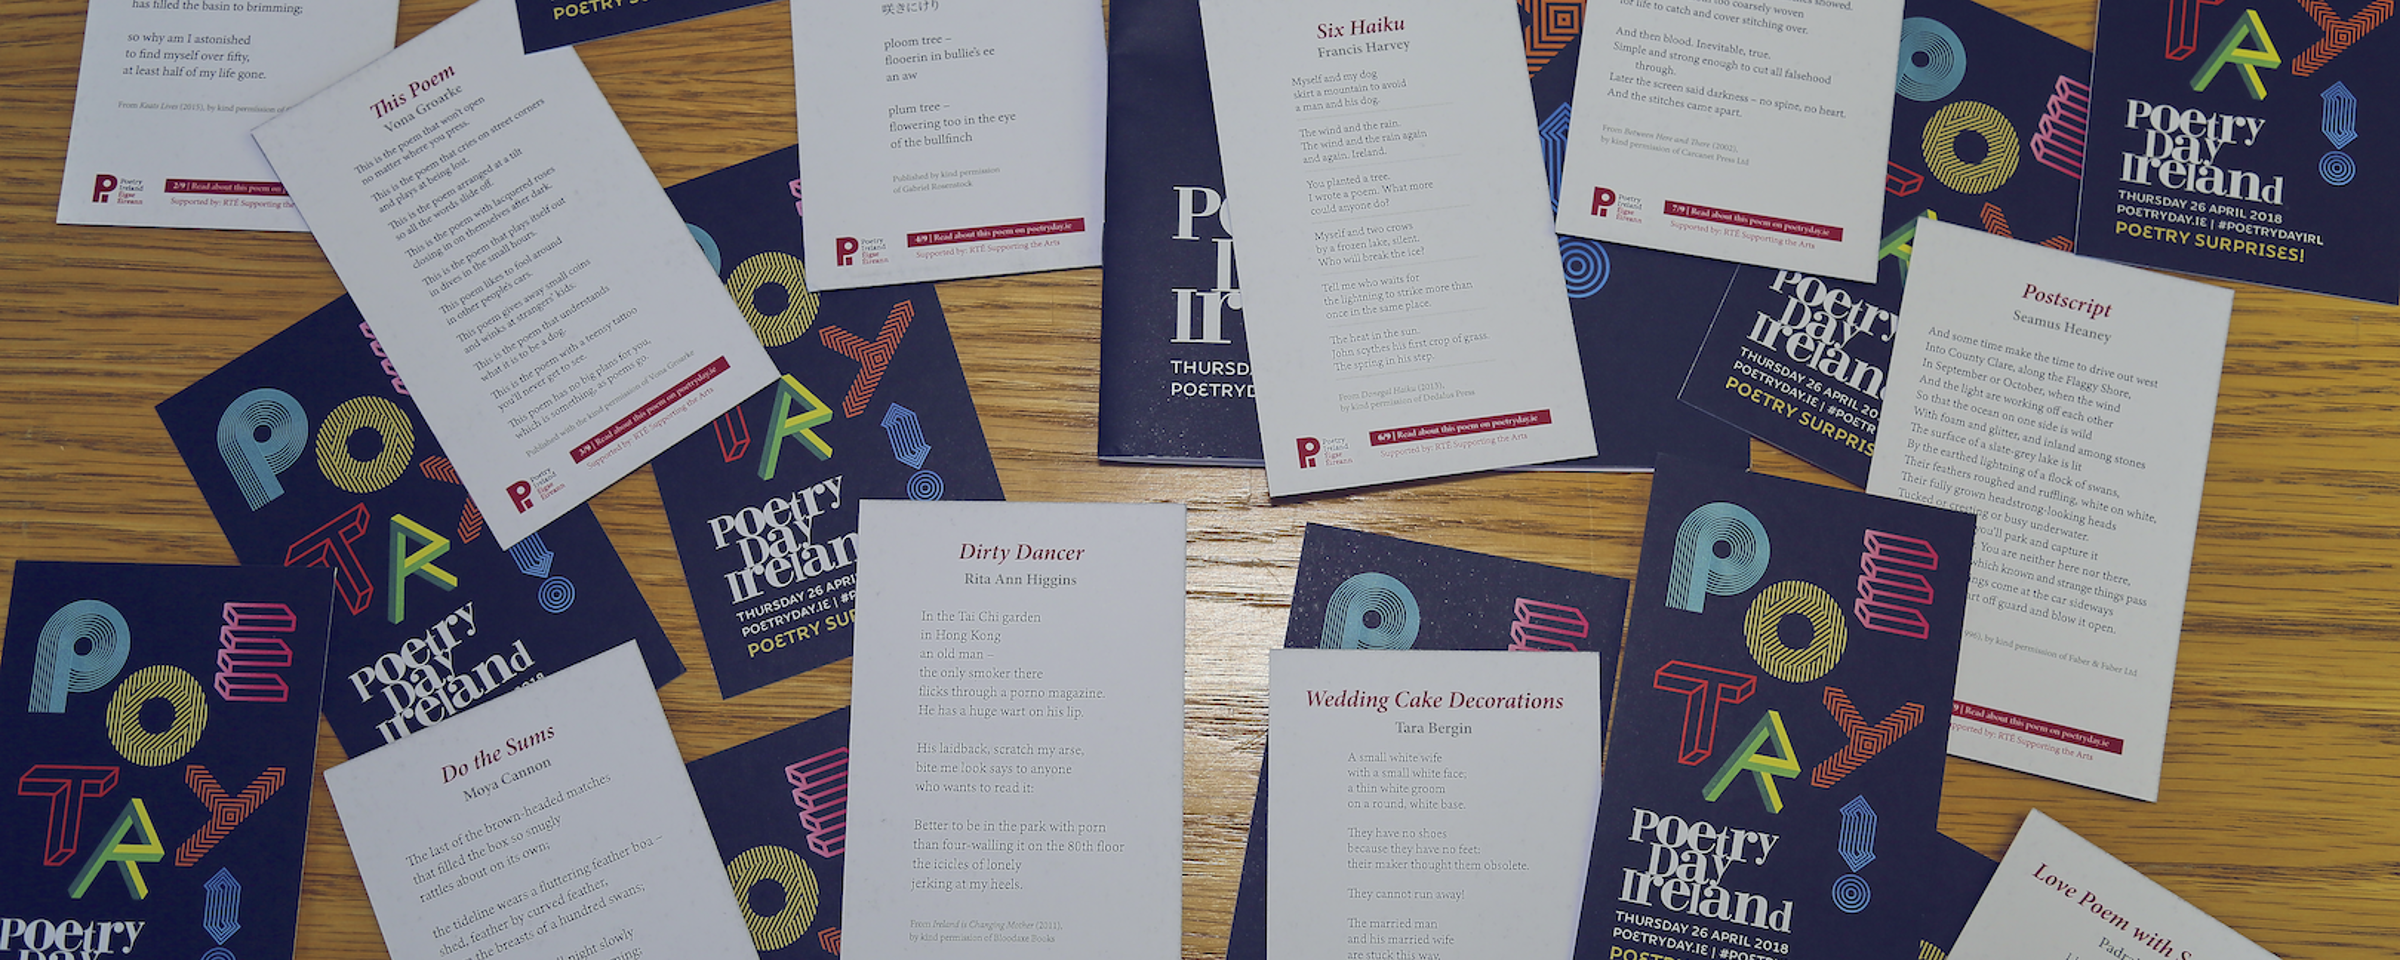 Pocket poems from Poetry Ireland